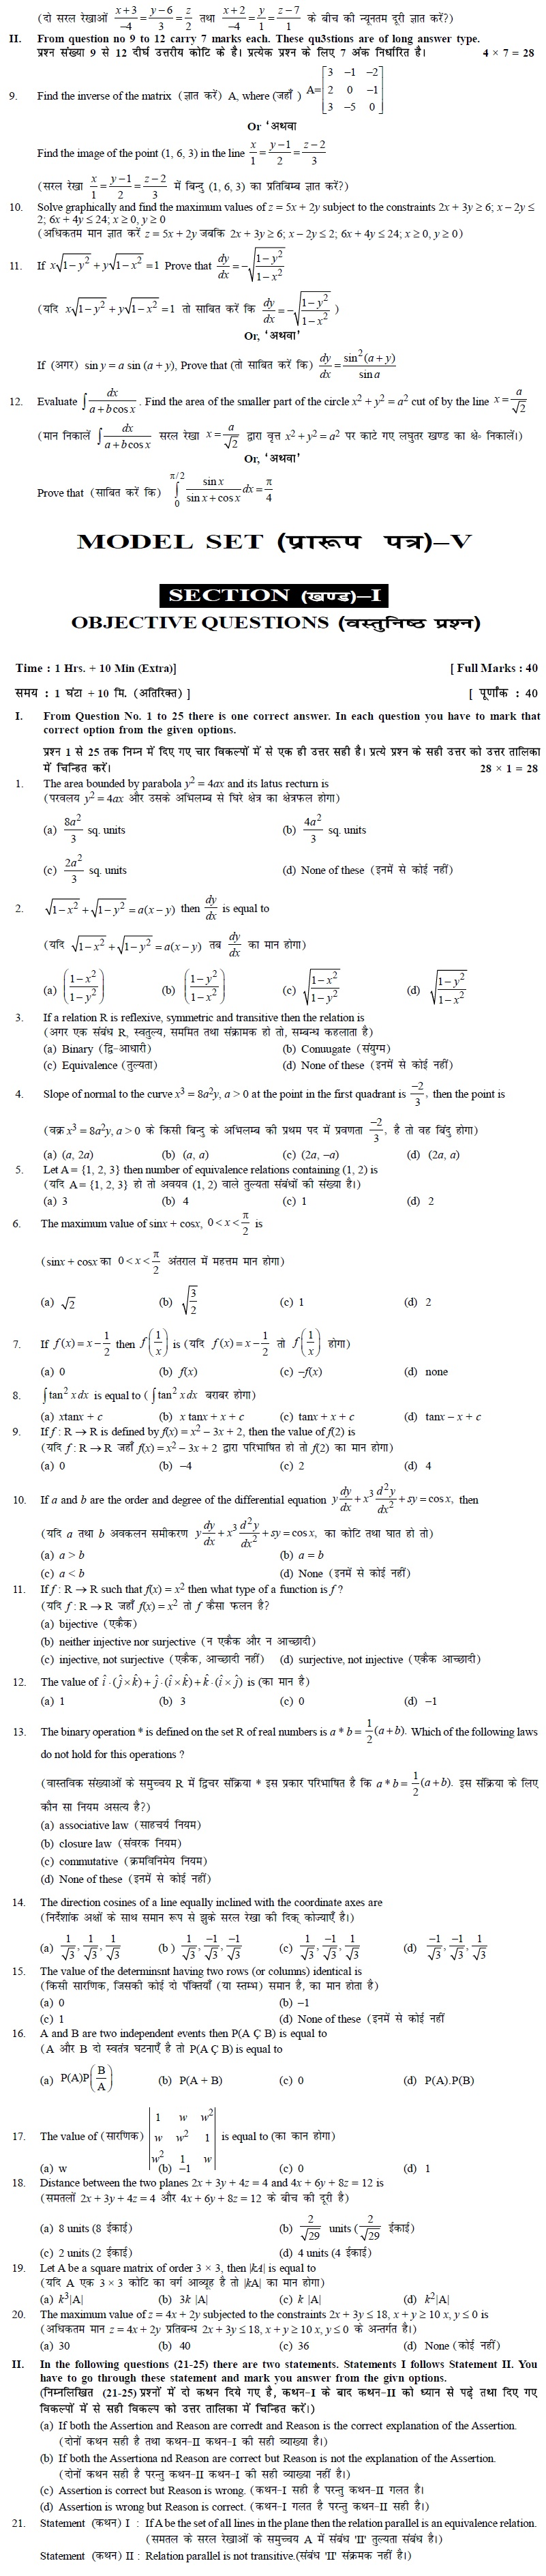 Bihar Board Class XII Science Model Question Papers - Mathematics